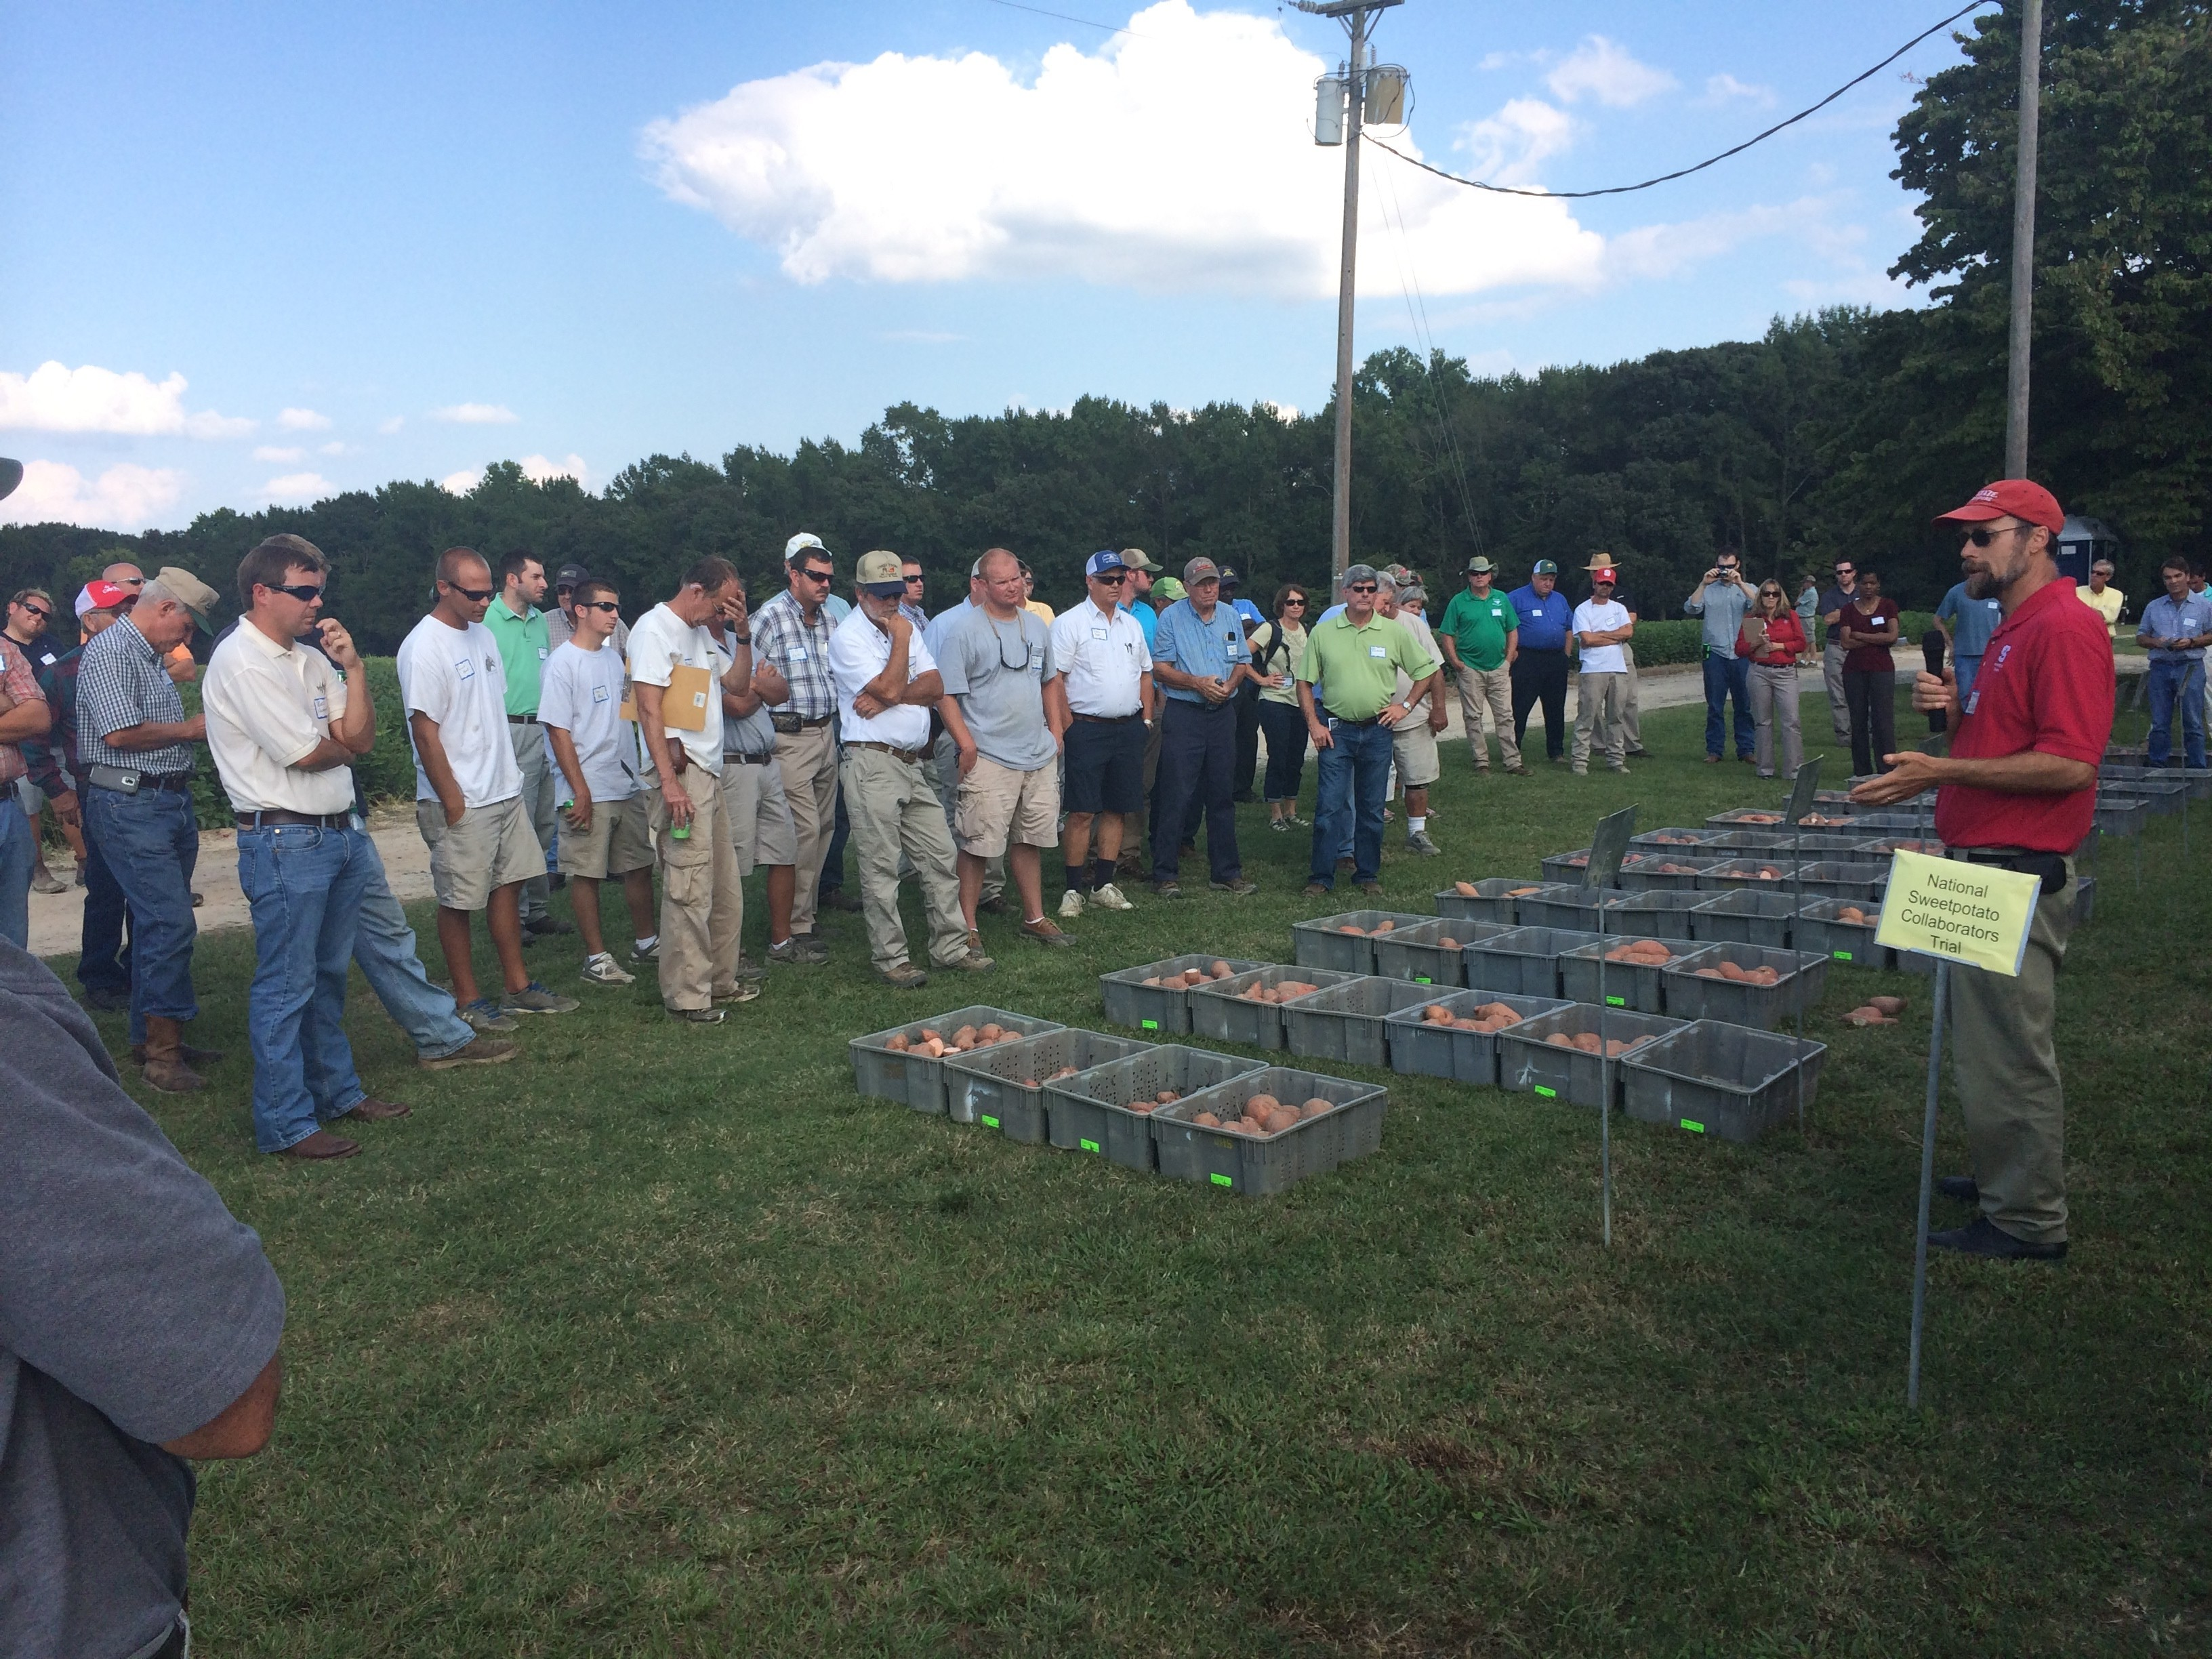 Ken Pecota provides information regarding new releases and advanced selections in the National Sweetpotato Collaborators Trial at the 2014 NC Sweetpotato Field Day.